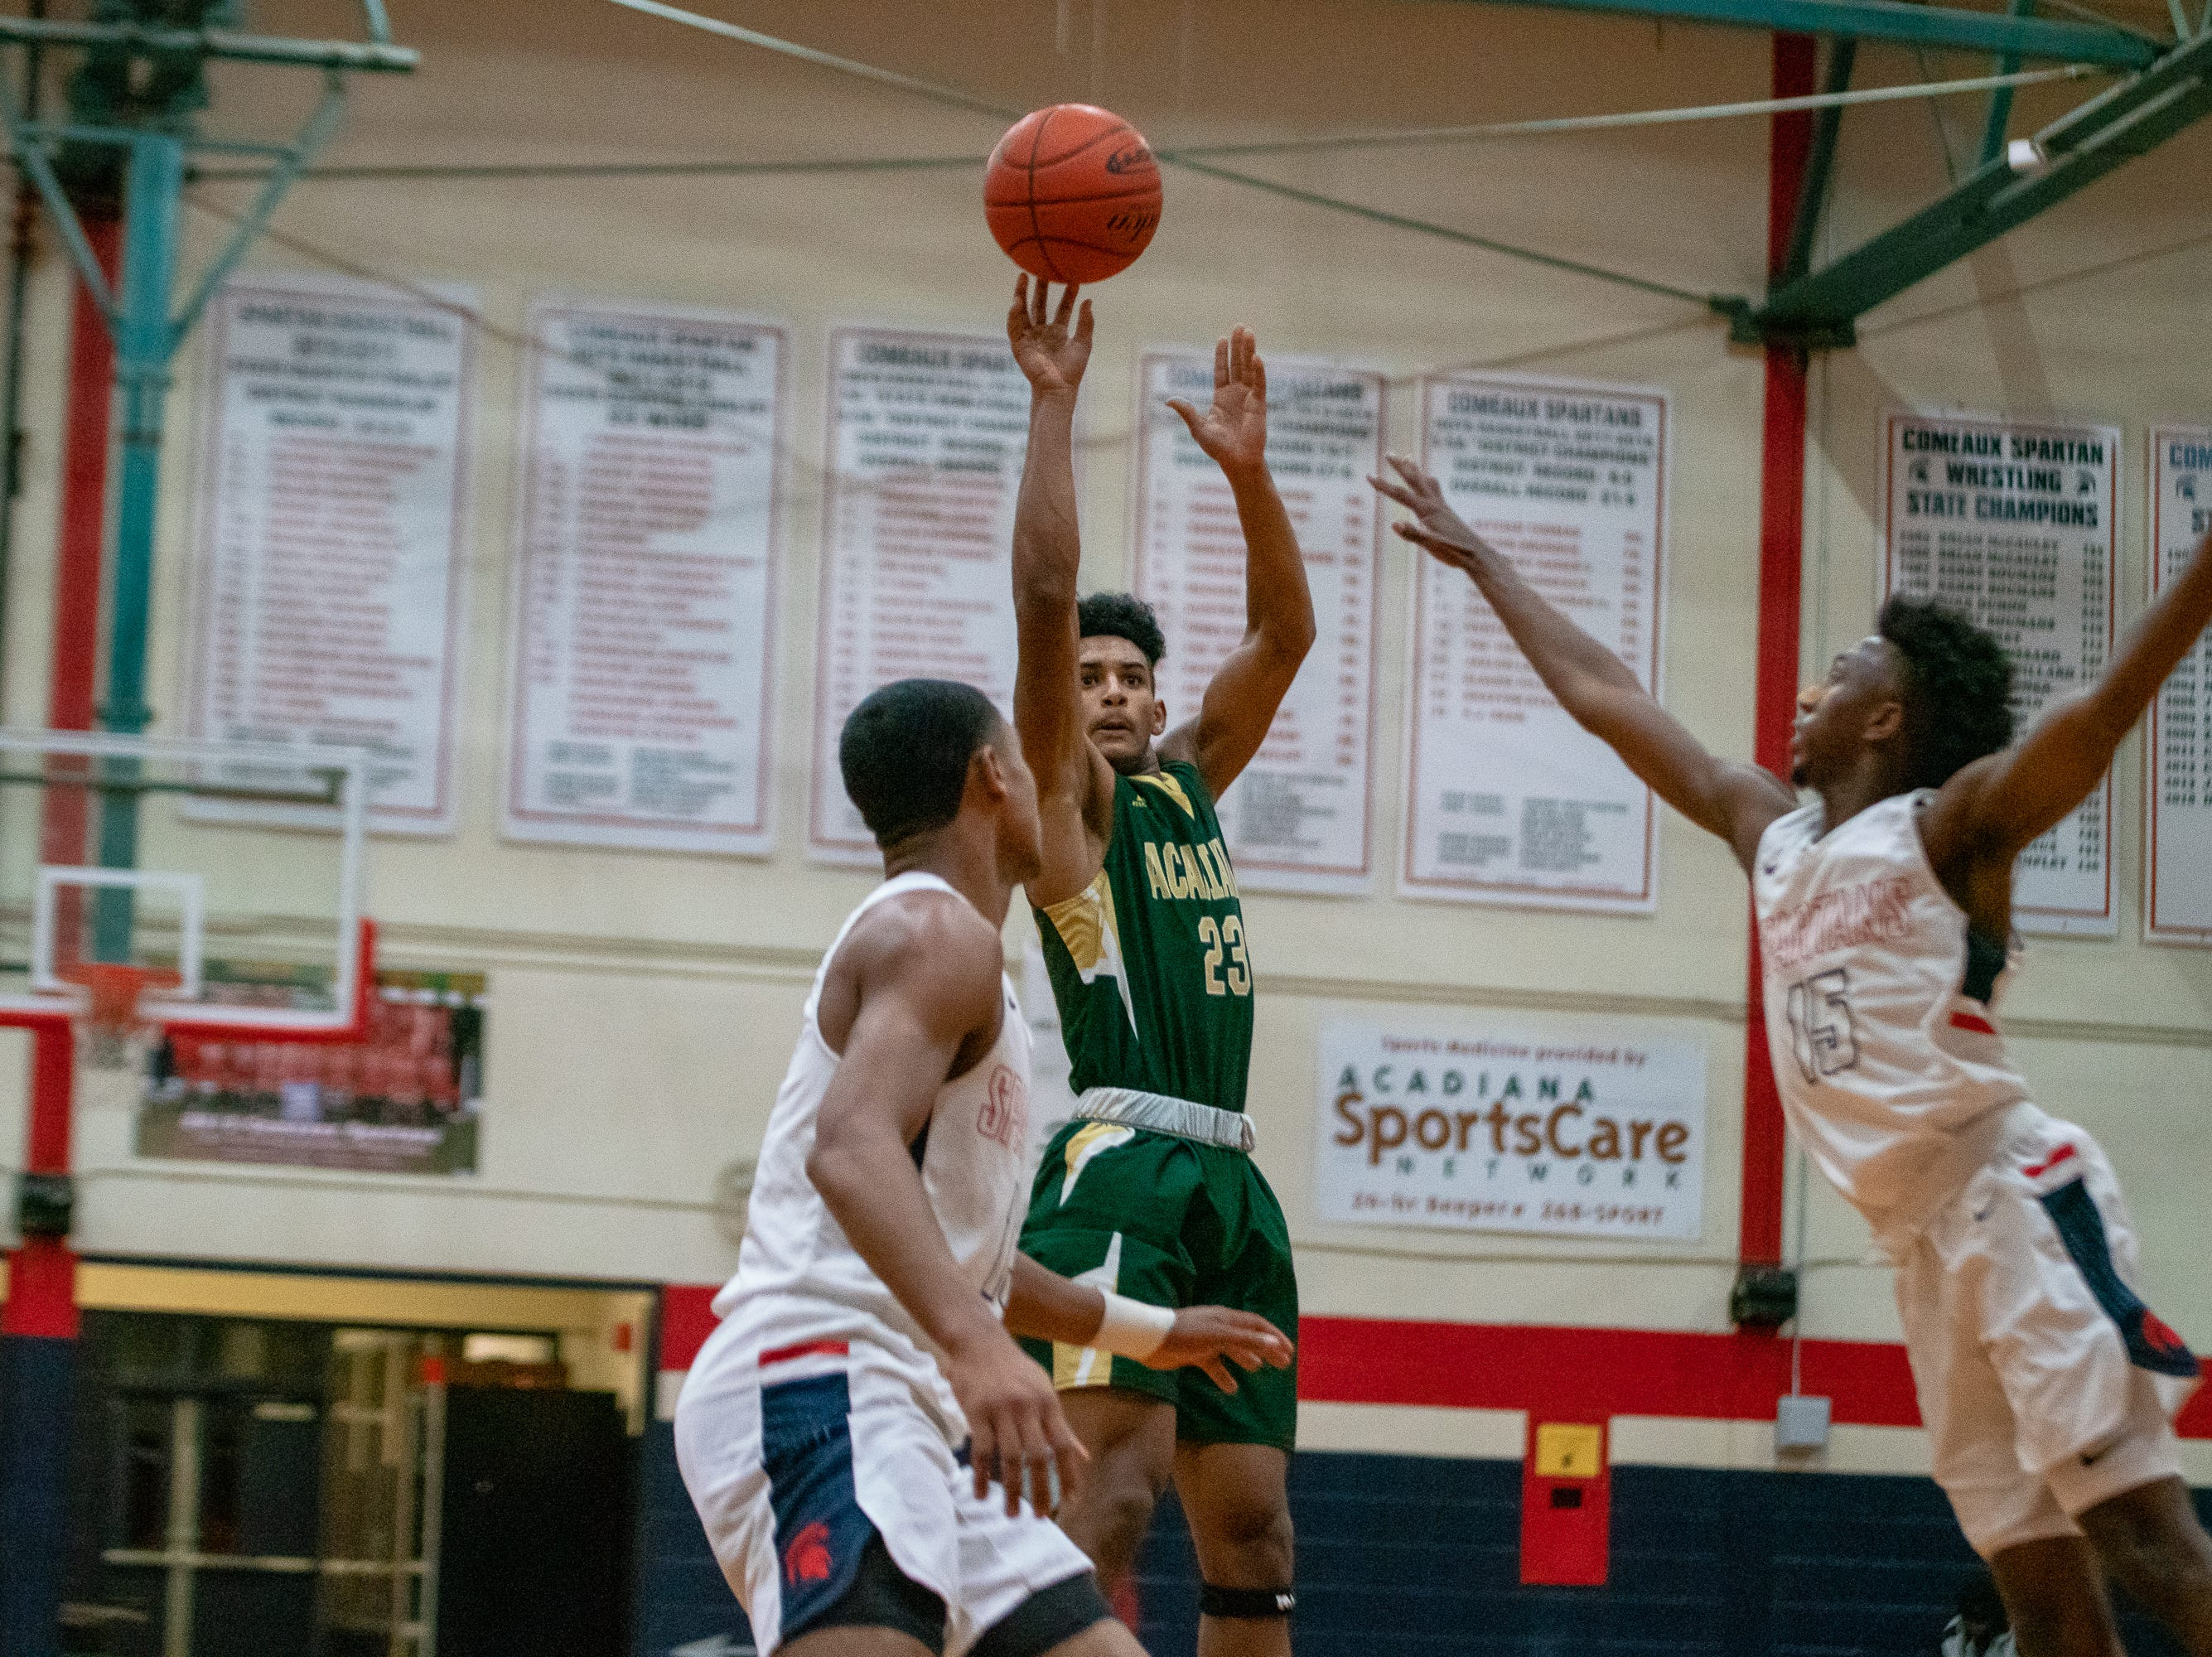 Acadiana High's Keontae Williams (23) shoots to score as the Comeaux High Spartans take on the Acadiana High Wreckin' Rams at Comeaux High School on Jan. 25, 2019.